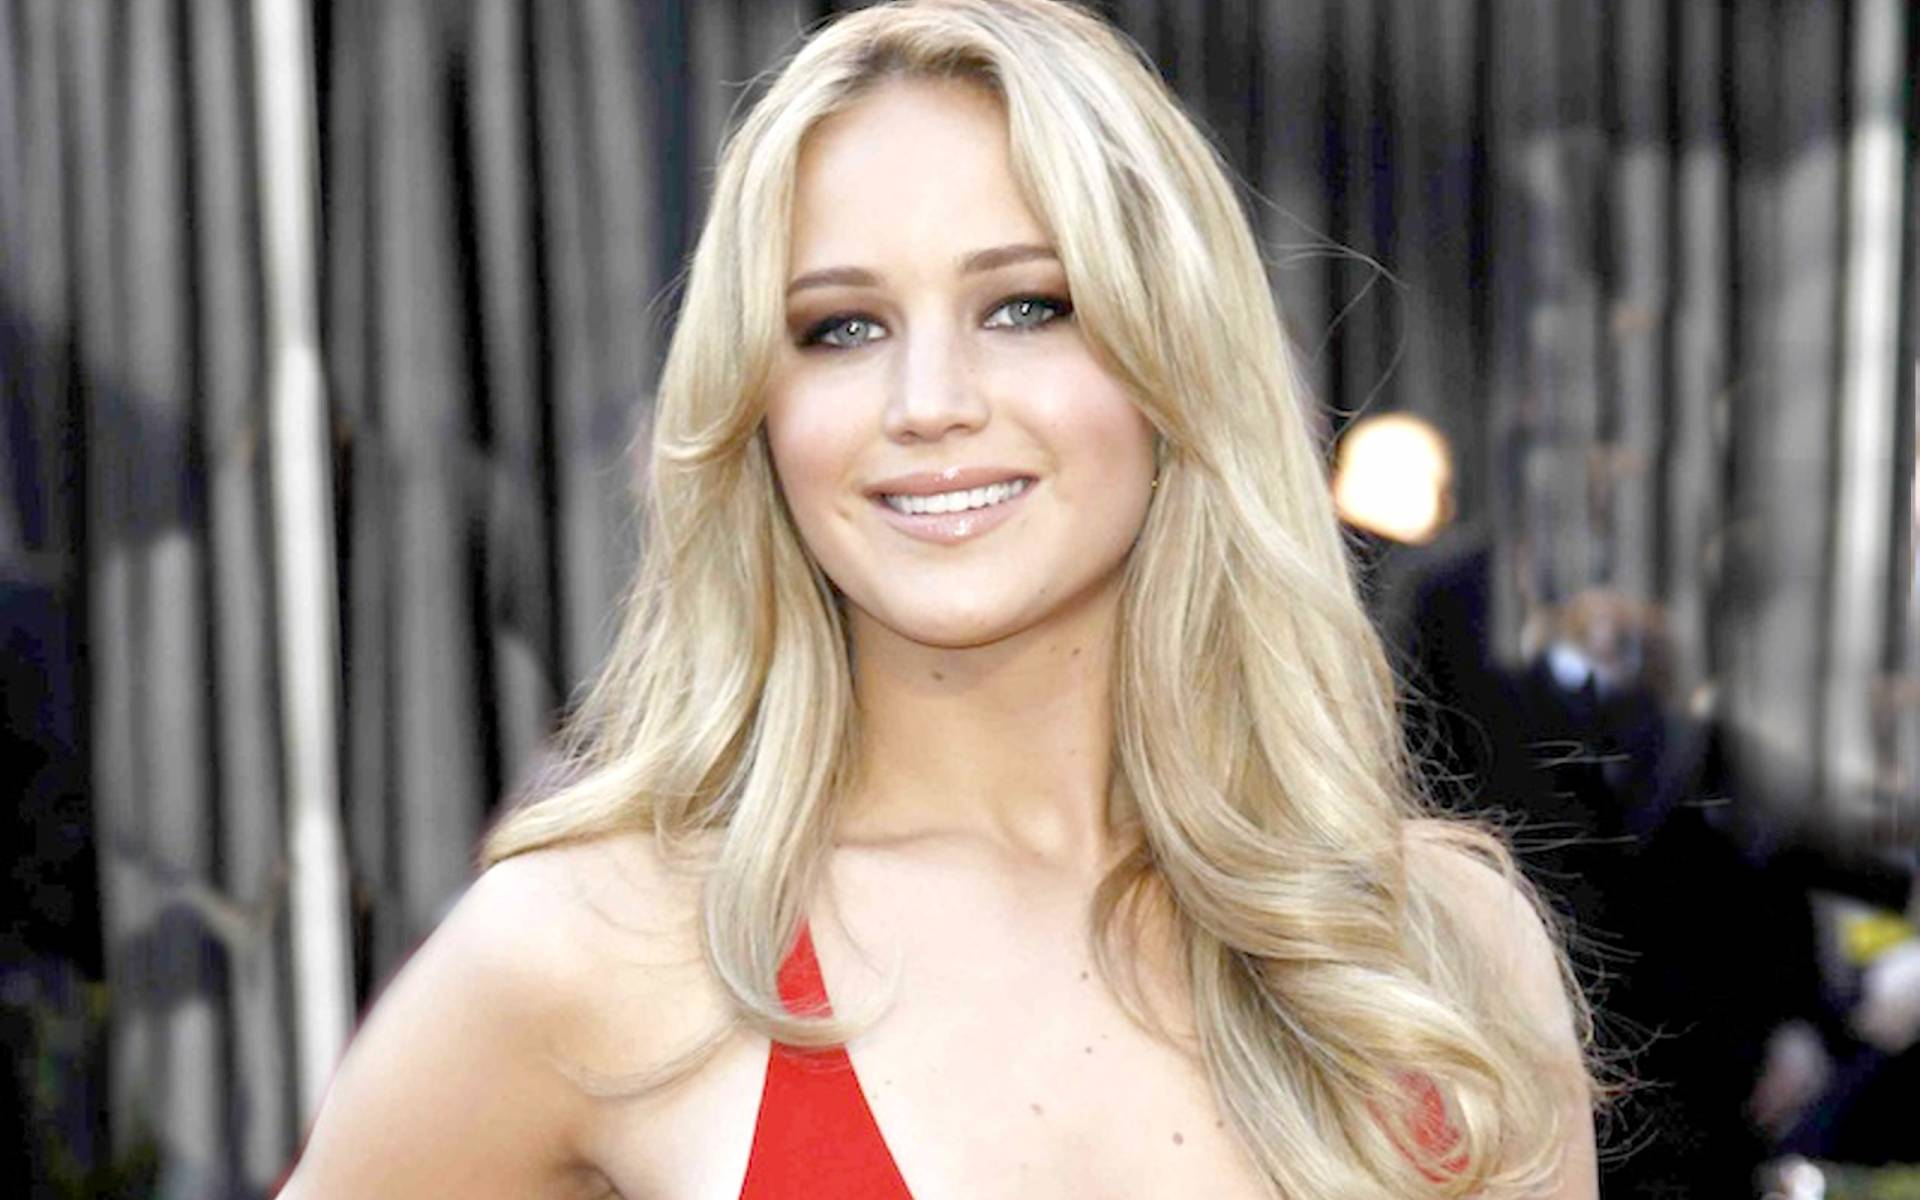 Pretty Jennifer Lawrence Desktop Images Download